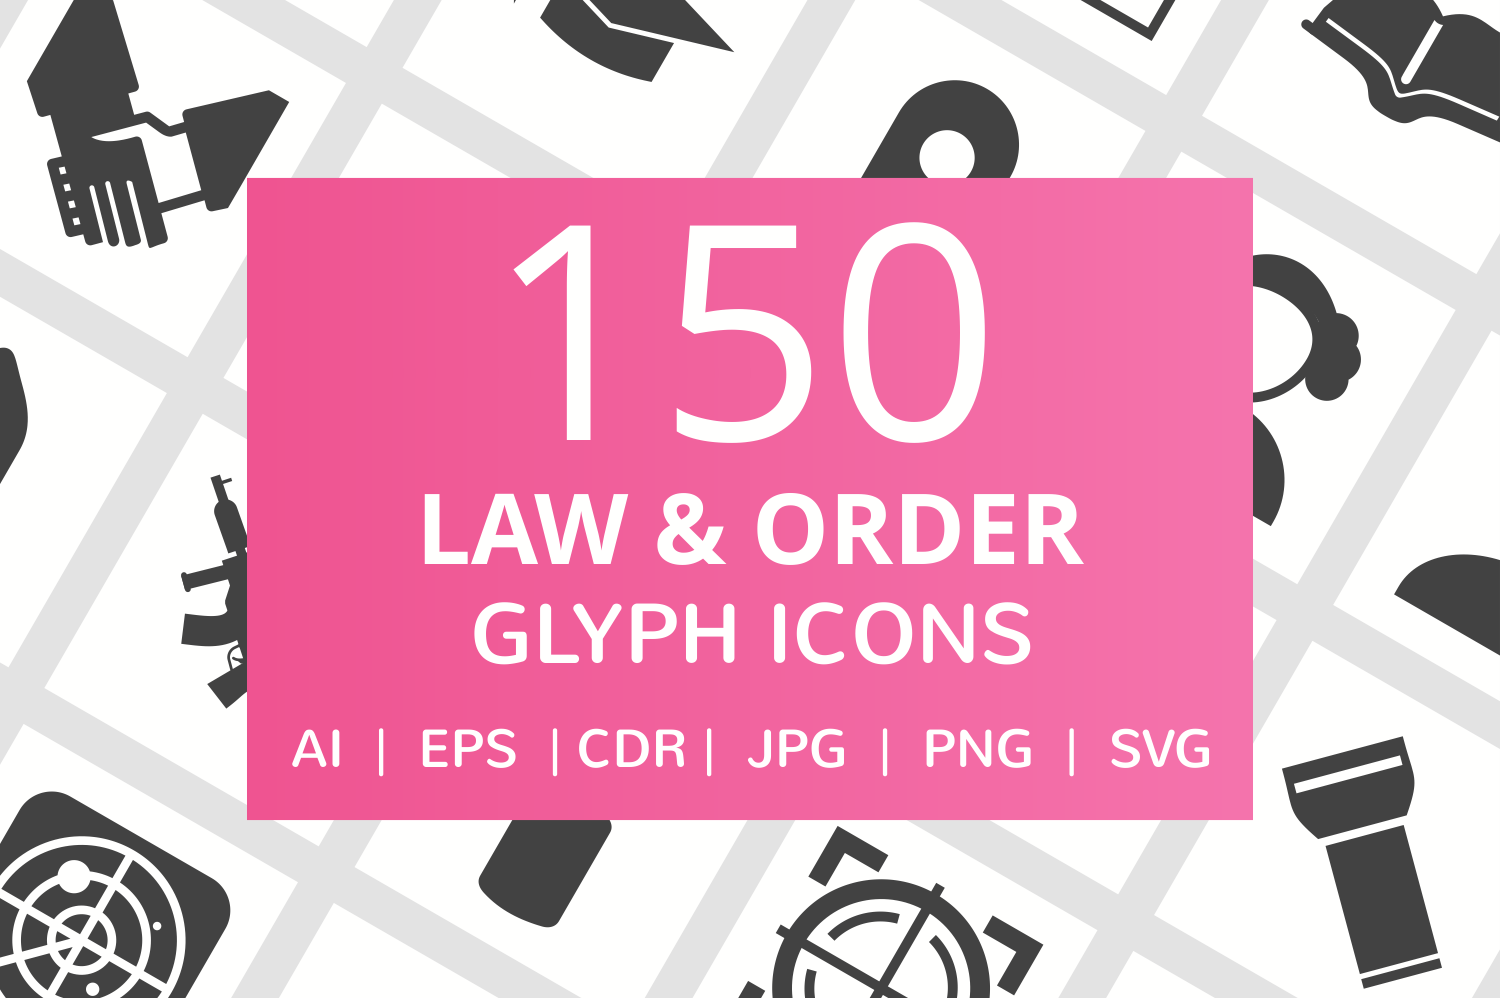 150 Law & Order Glyph Icons example image 1